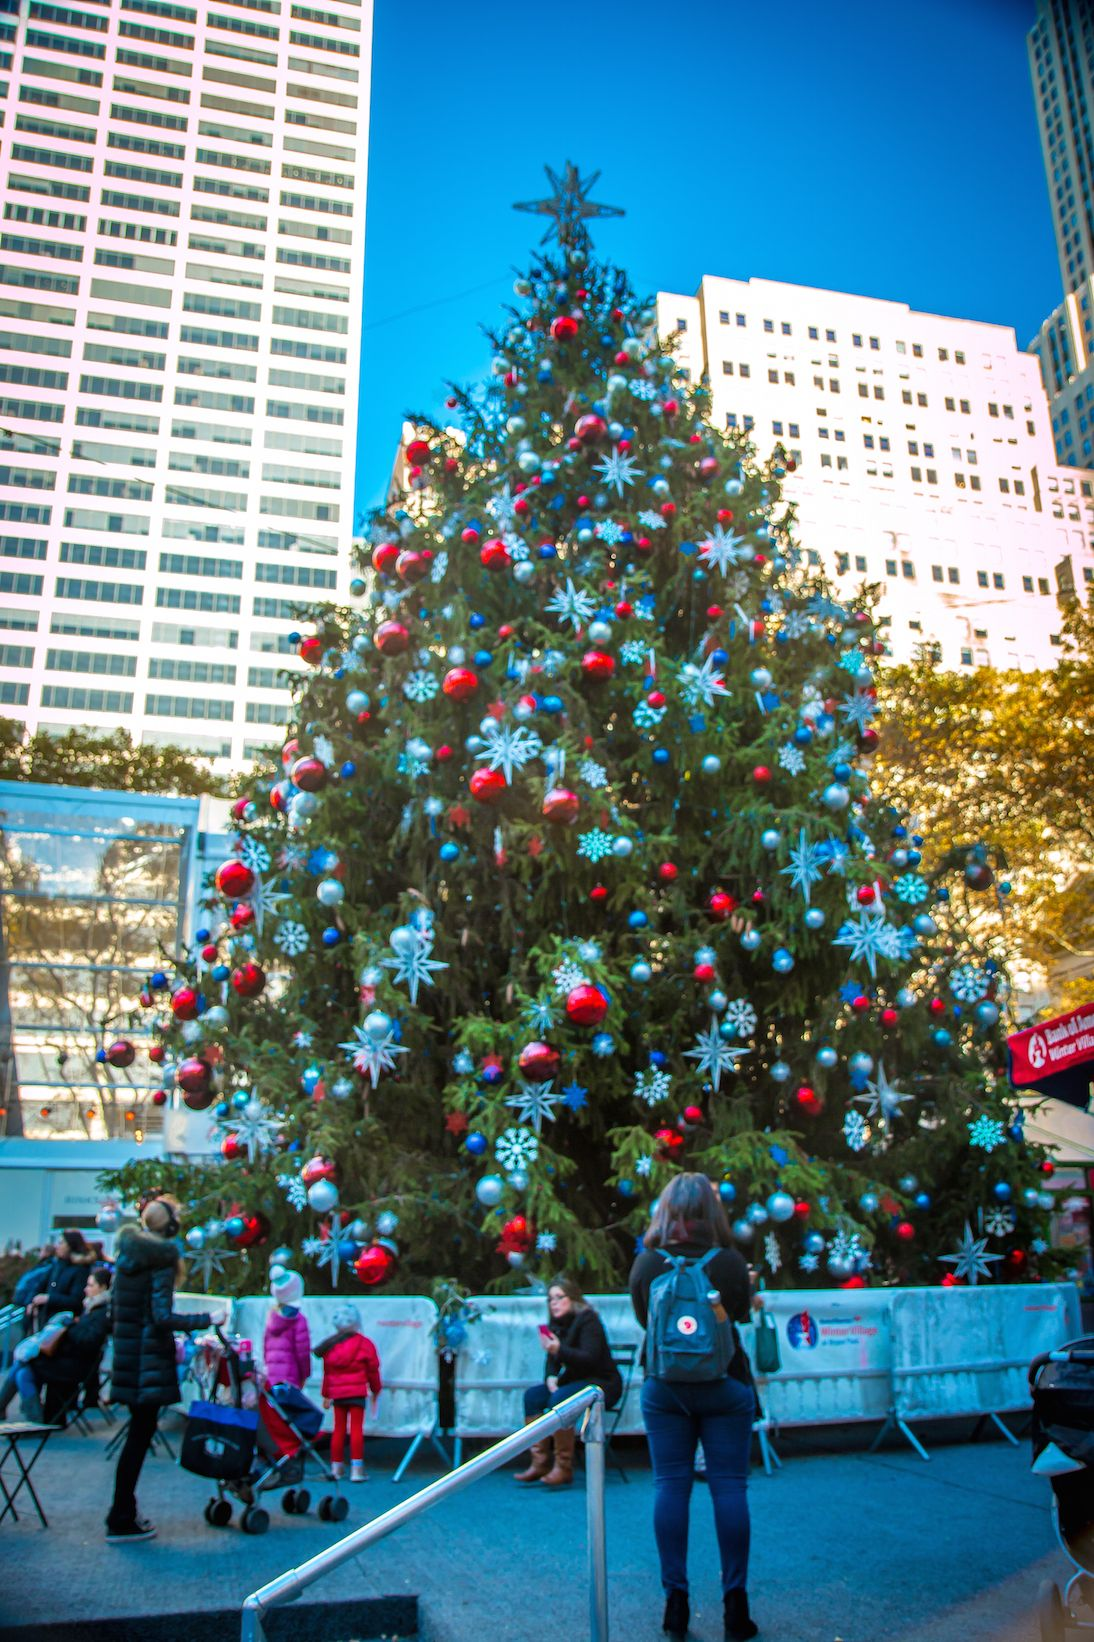 NYC Christmas Windows: A Free Walking Tour (Self Guided) | Nyc ...